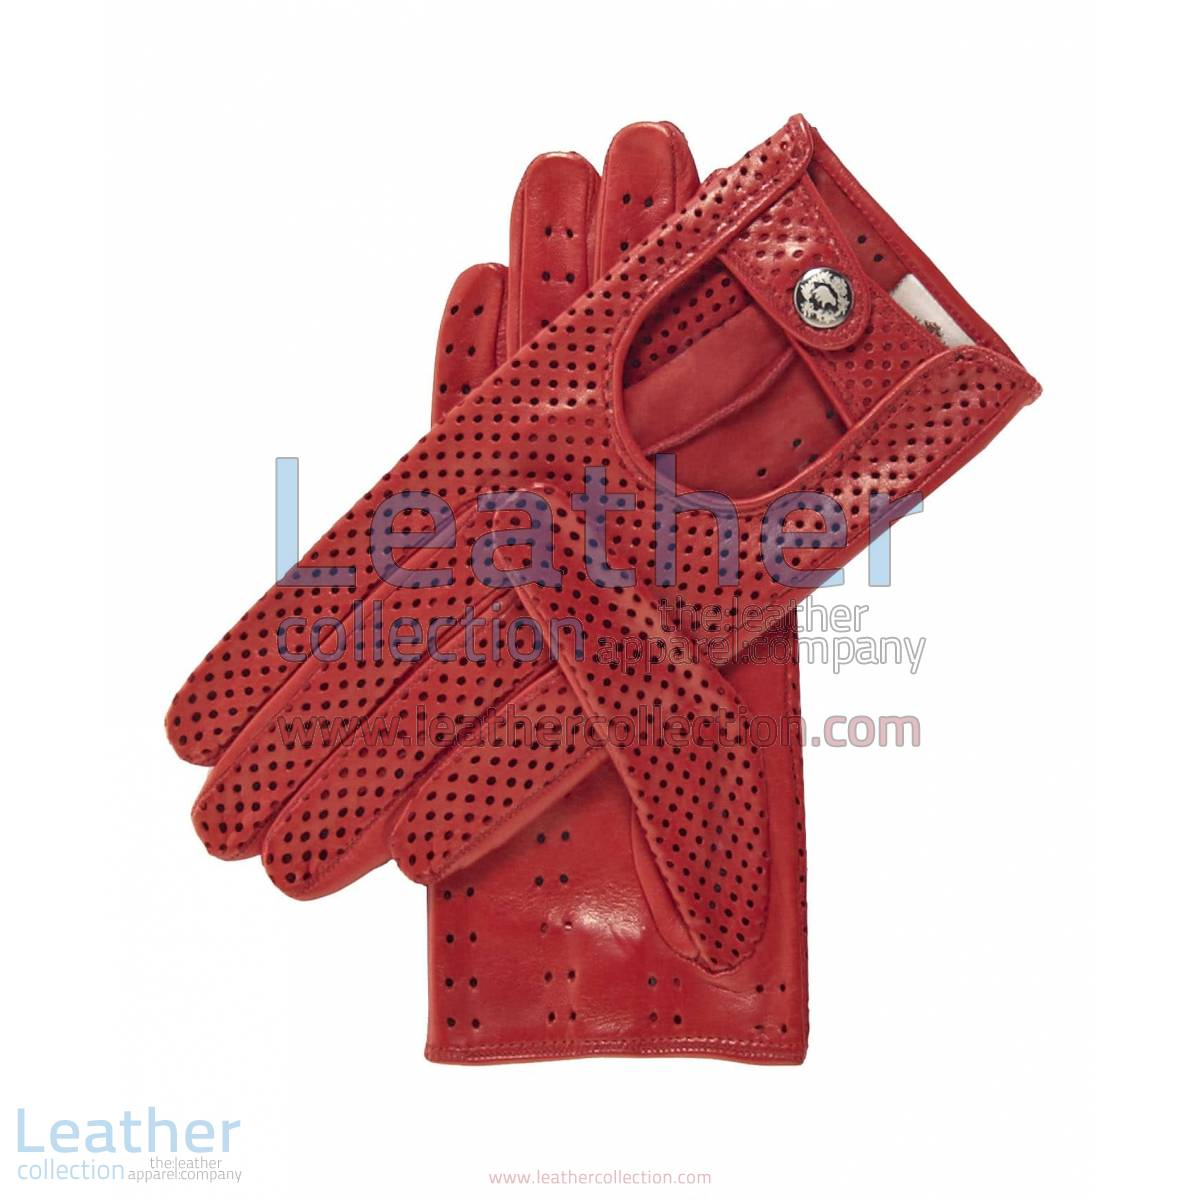 Ladies Summer Ventilated Red Driving Gloves | summer driving gloves